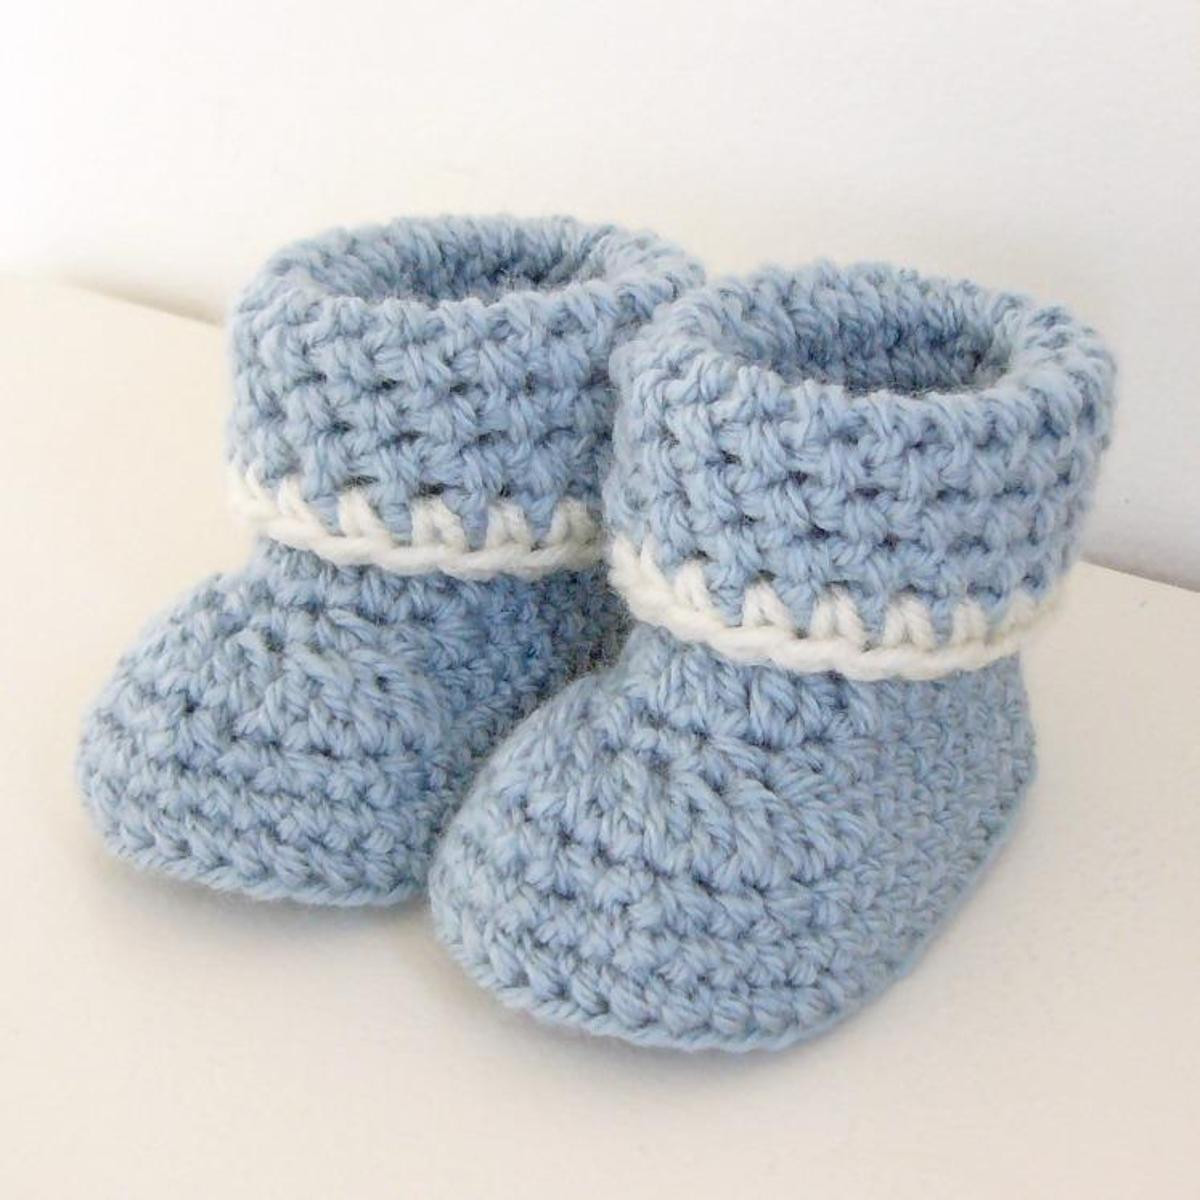 Free Baby Bootie Patterns Inspirational Cozy Cuffs Crochet Baby Booties Pattern Of Top 50 Ideas Free Baby Bootie Patterns